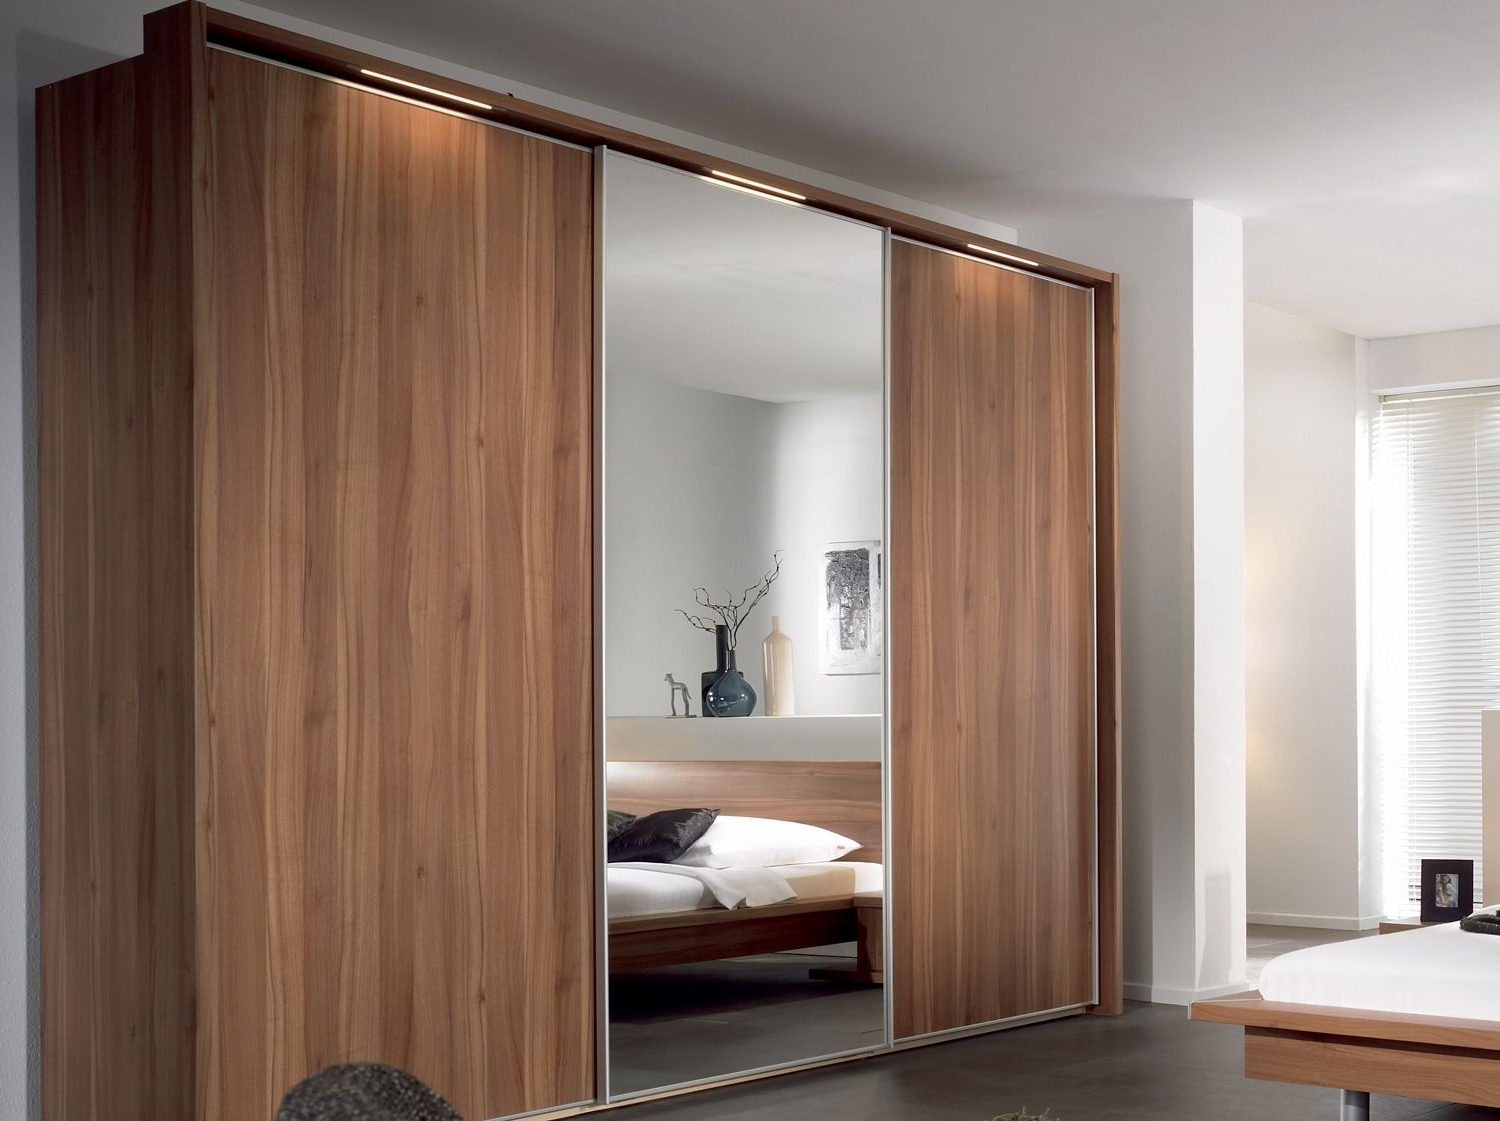 Latest Dark Wood Wardrobes With Mirror For Solid Wood Wardrobeteam 7 – Valore Sliding Door Wardrobes Are (View 8 of 15)